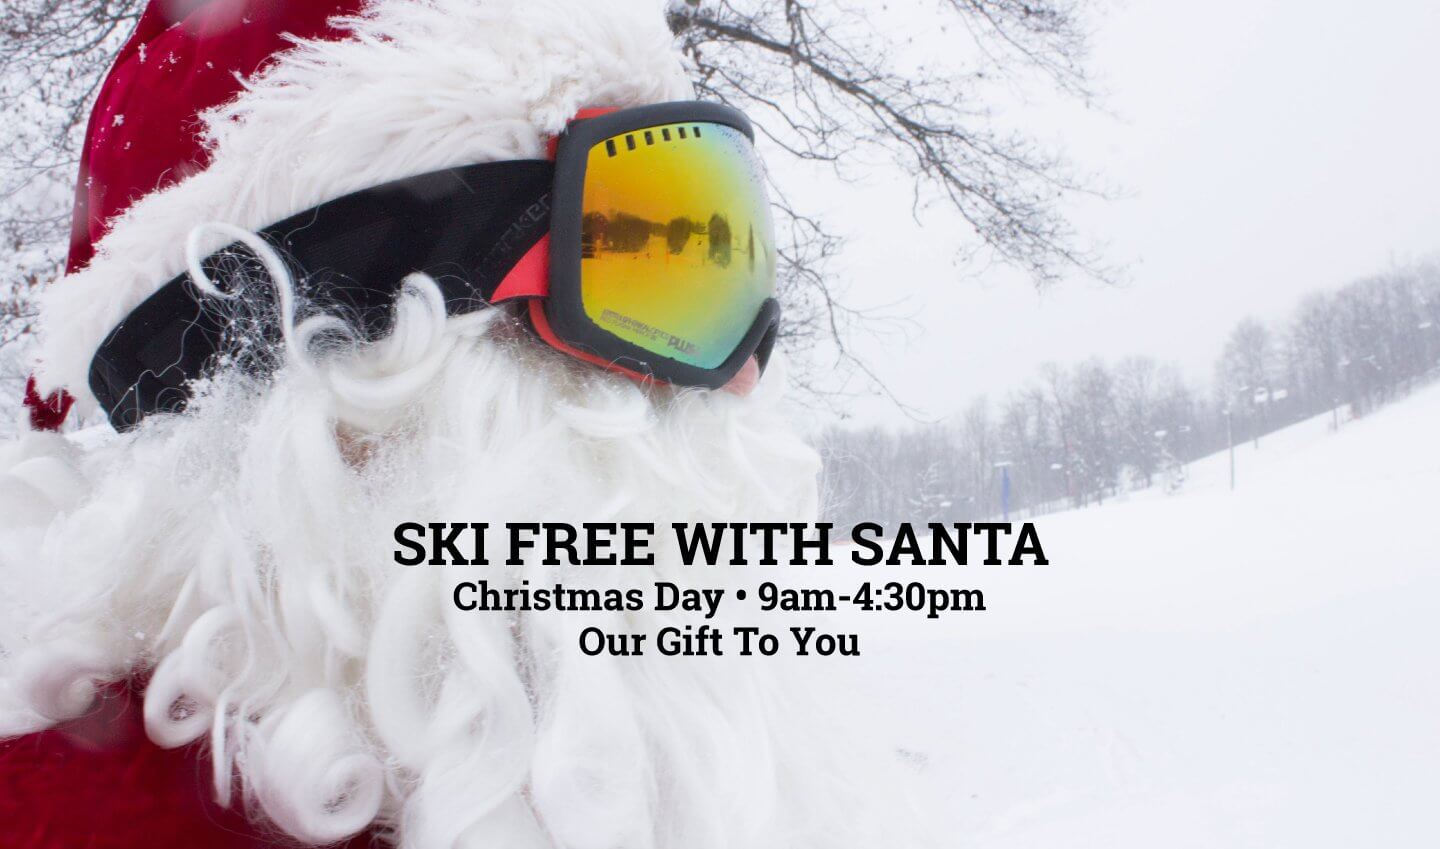 Ski free with Santa at Schuss Mtn. It's our gift to you.